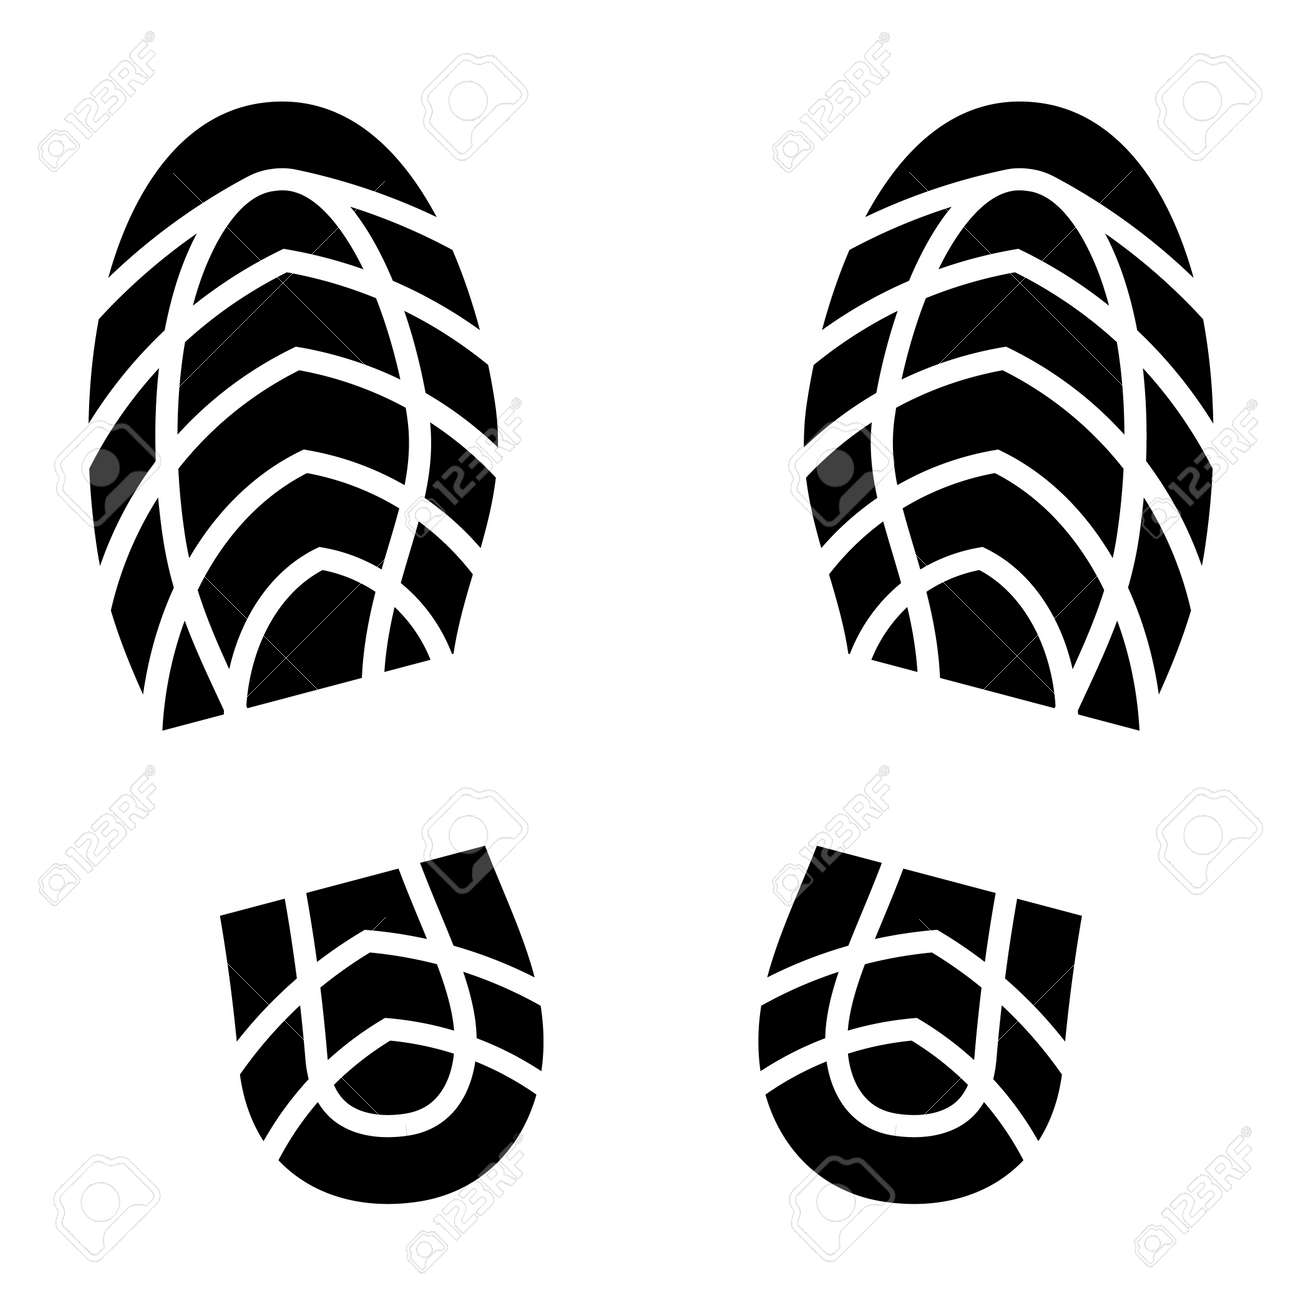 Clean Shoe Imprints Royalty Free Cliparts, Vectors, And Stock ...